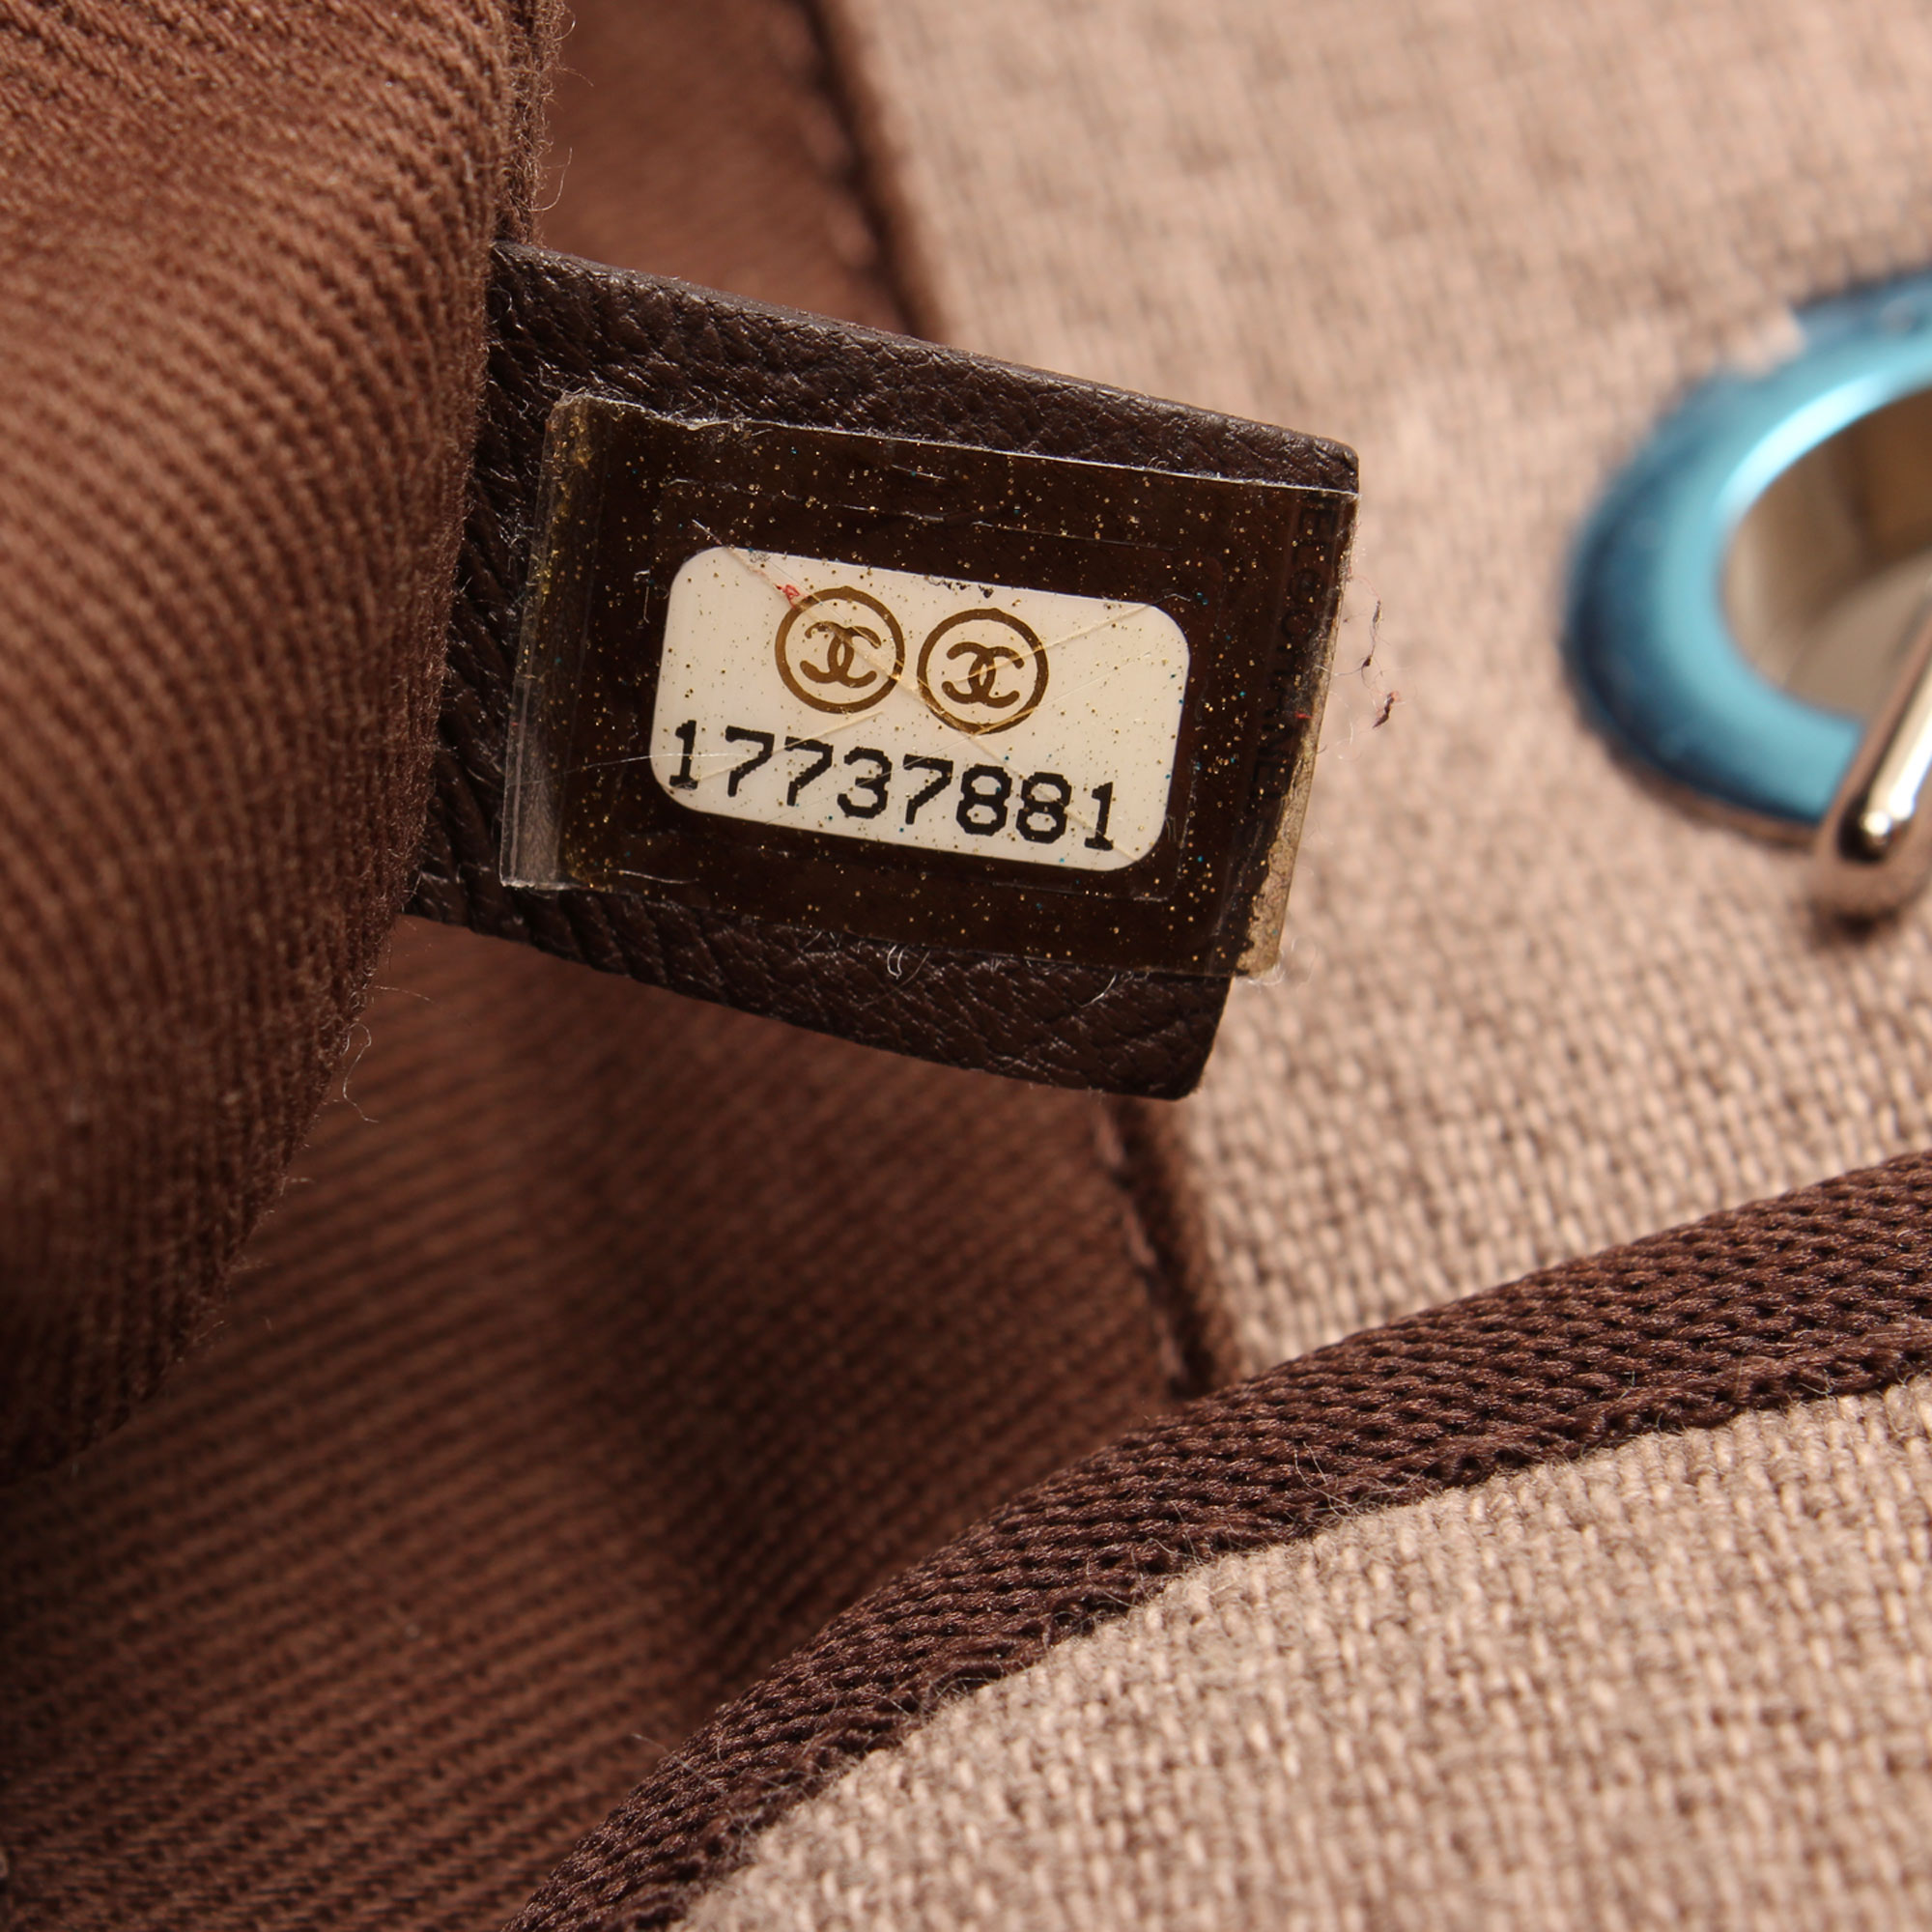 Serial number image of chanel ecru deauville tote bag